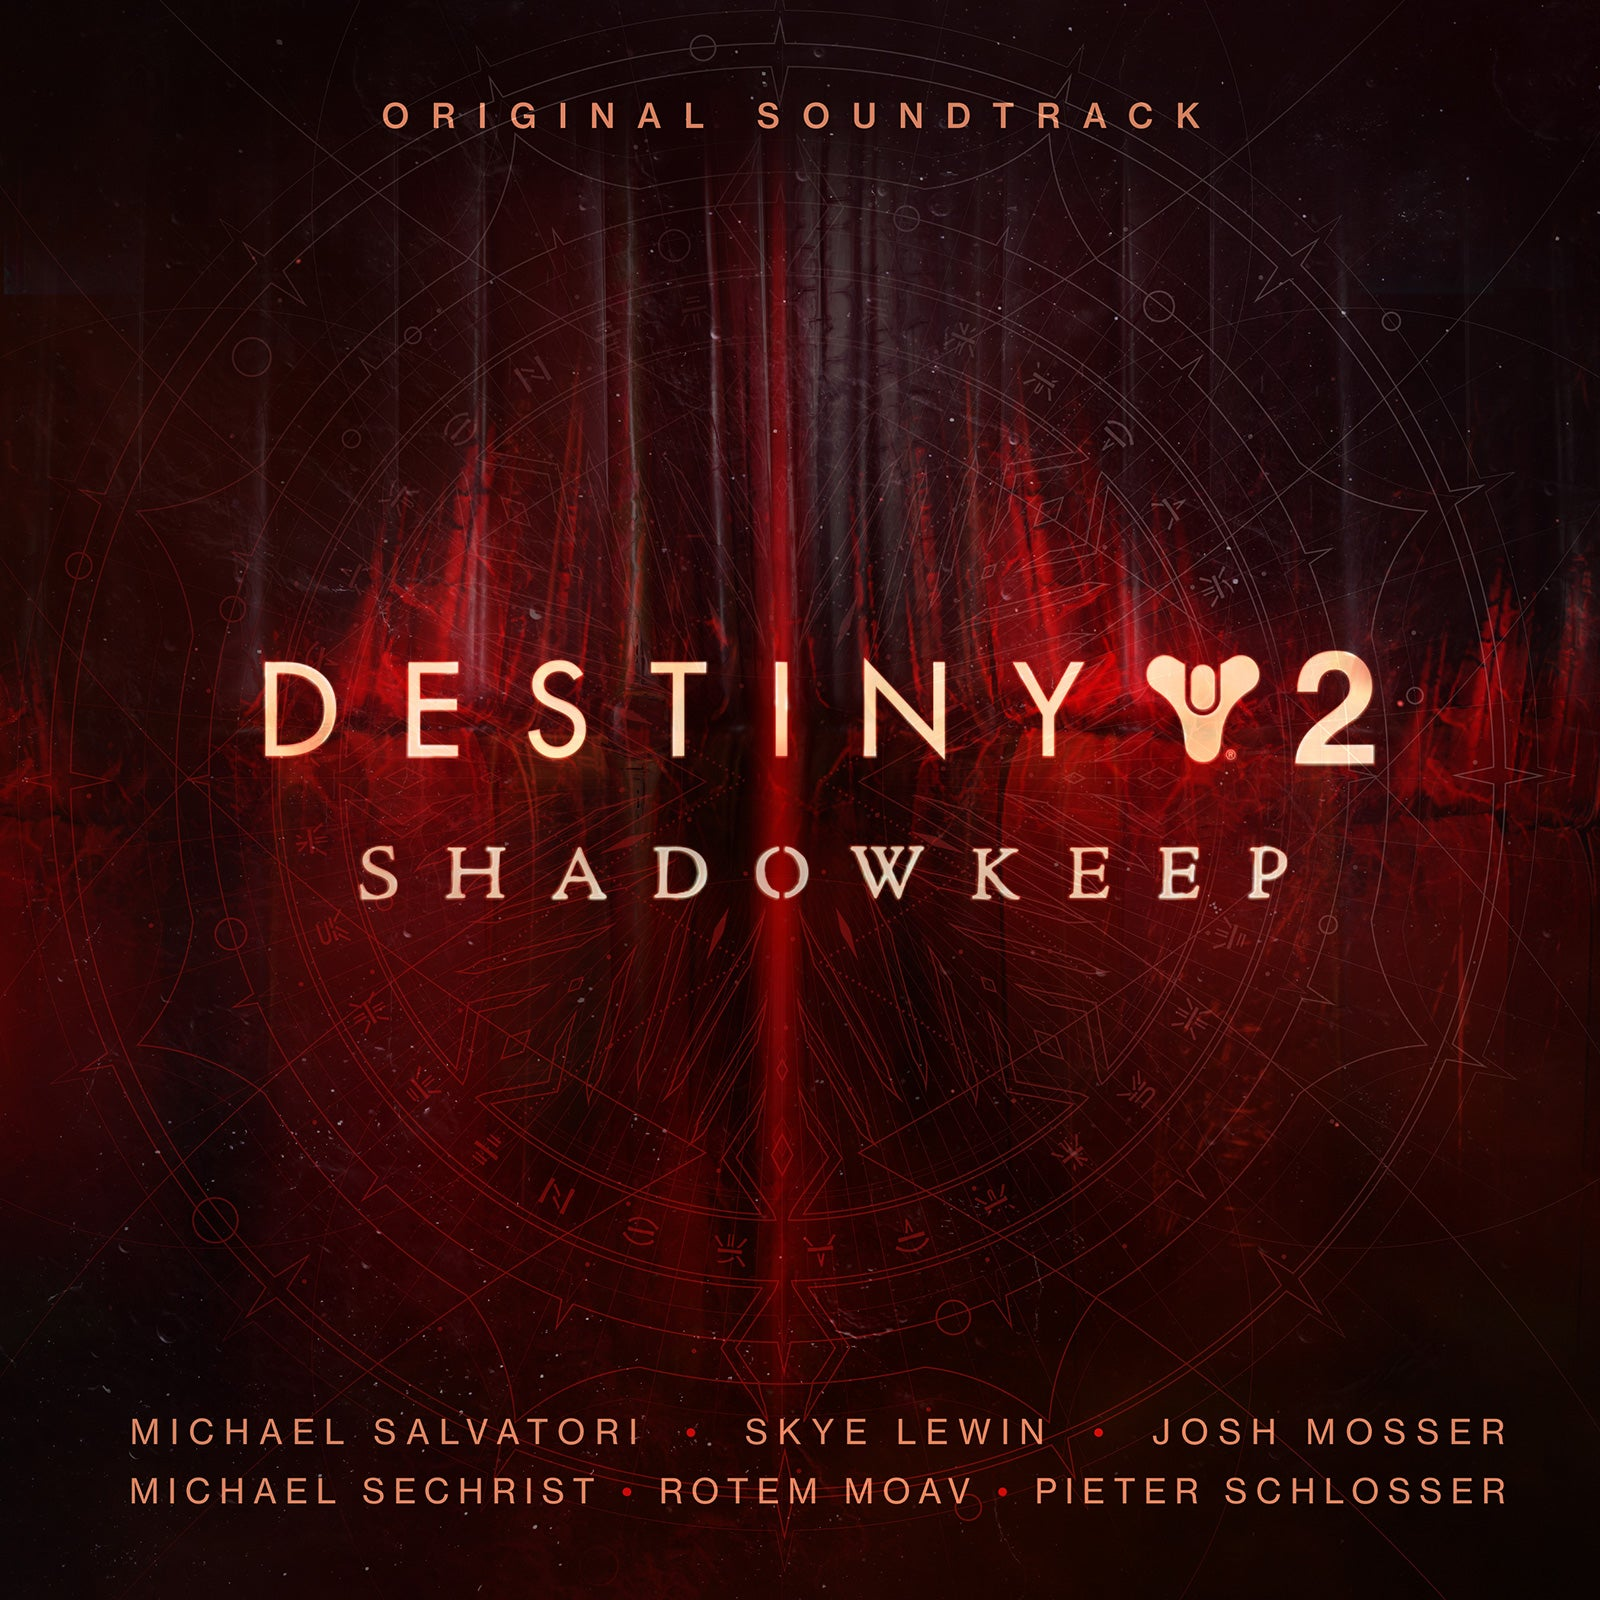 Destiny 2: Shadowkeep Original Soundtrack Digital Edition